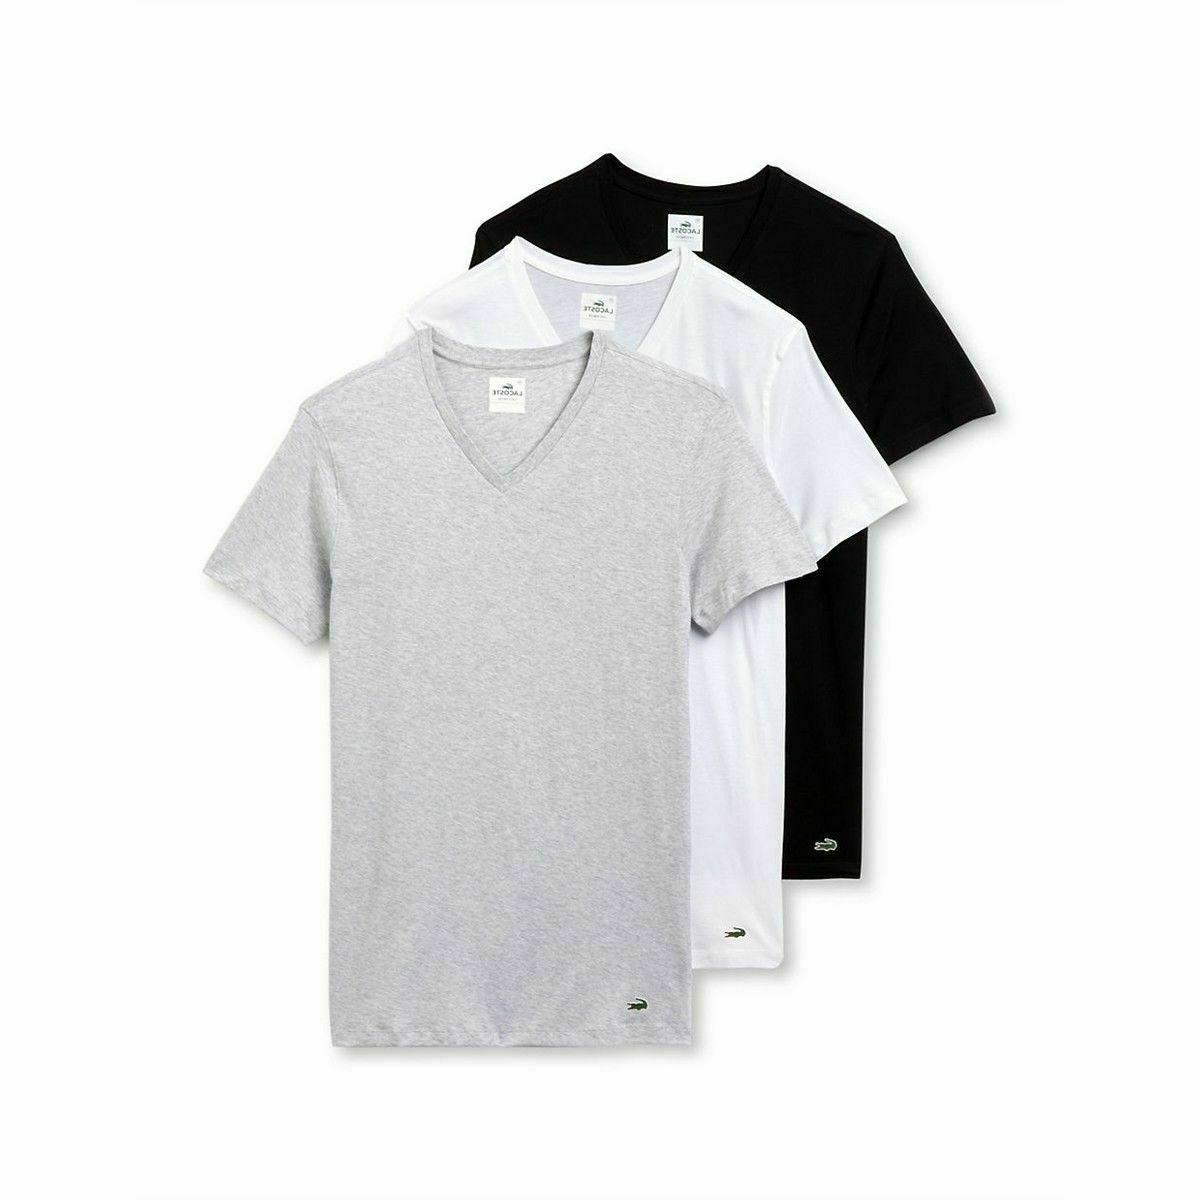 men underwear t shirt 3 pack v